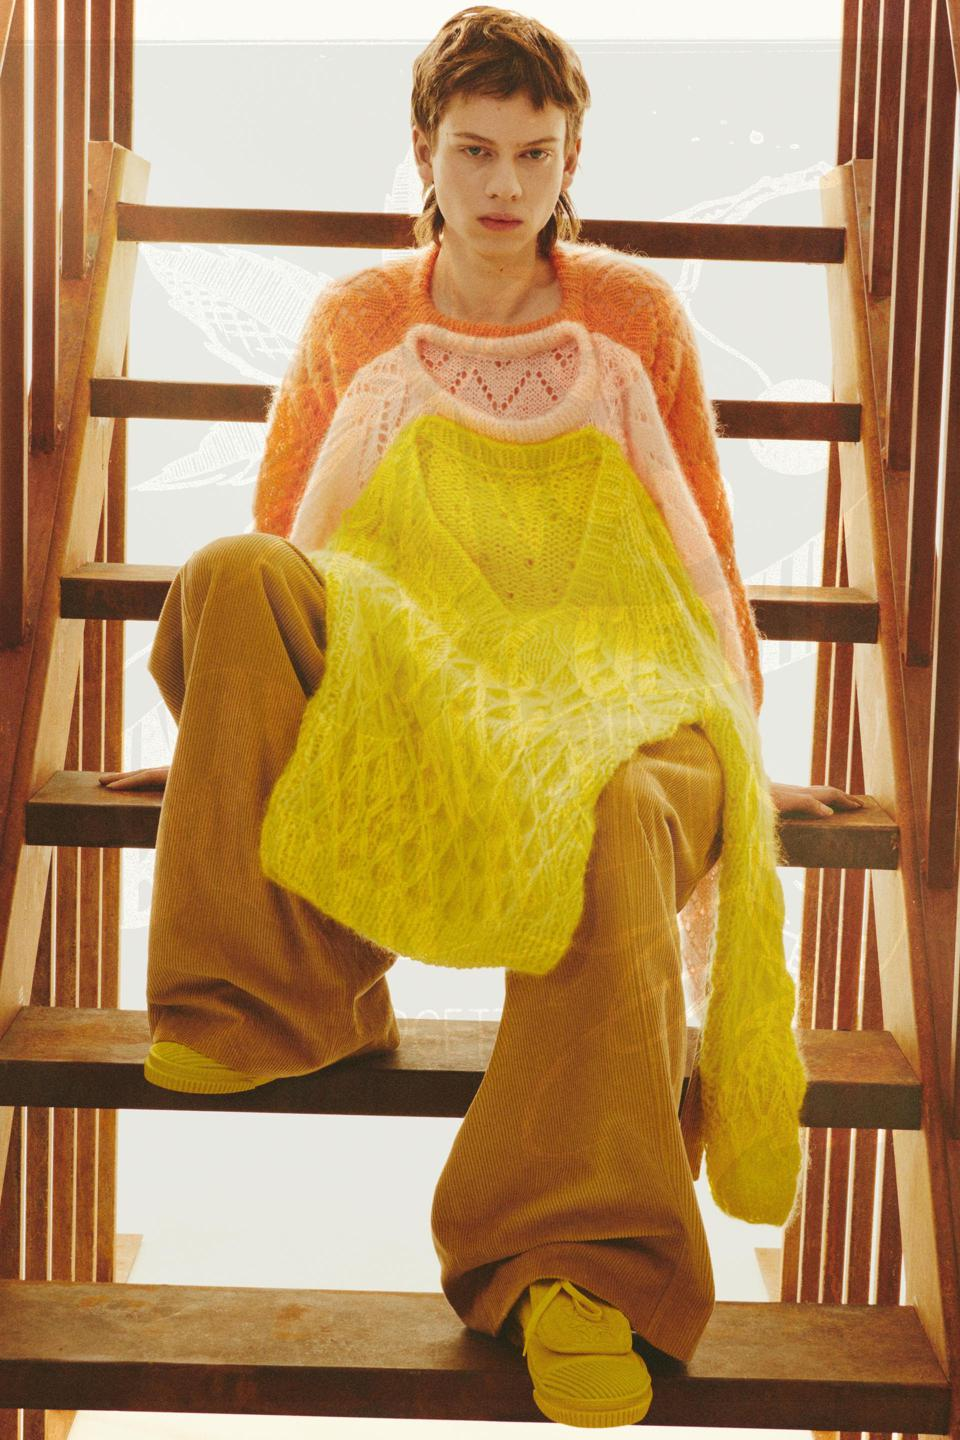 A models sits on a staircase wearing a sweater made from multiple sweaters